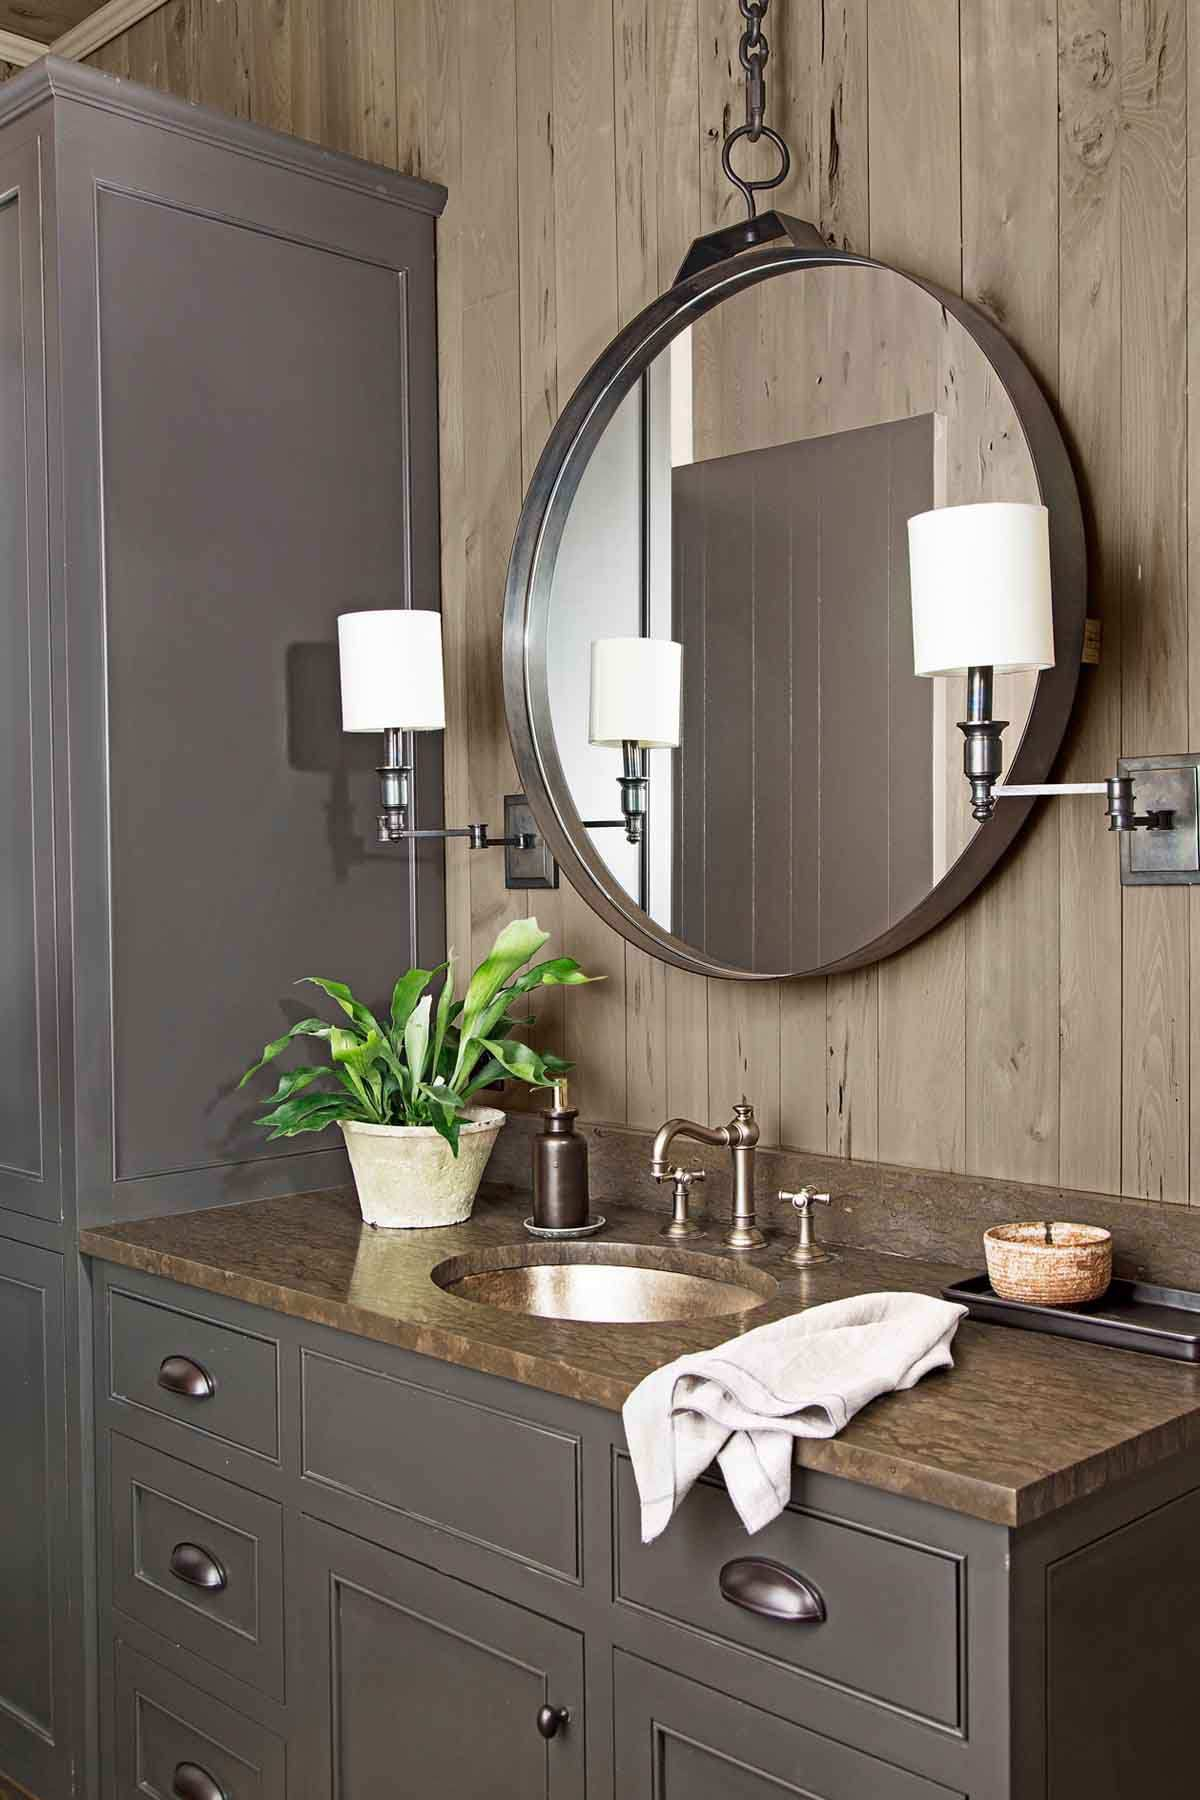 Decorative Rustic Storage Projects For Your Bathroom: 47+ Amazing Rustic Bathroom Decor Will Make Your Home Awesome